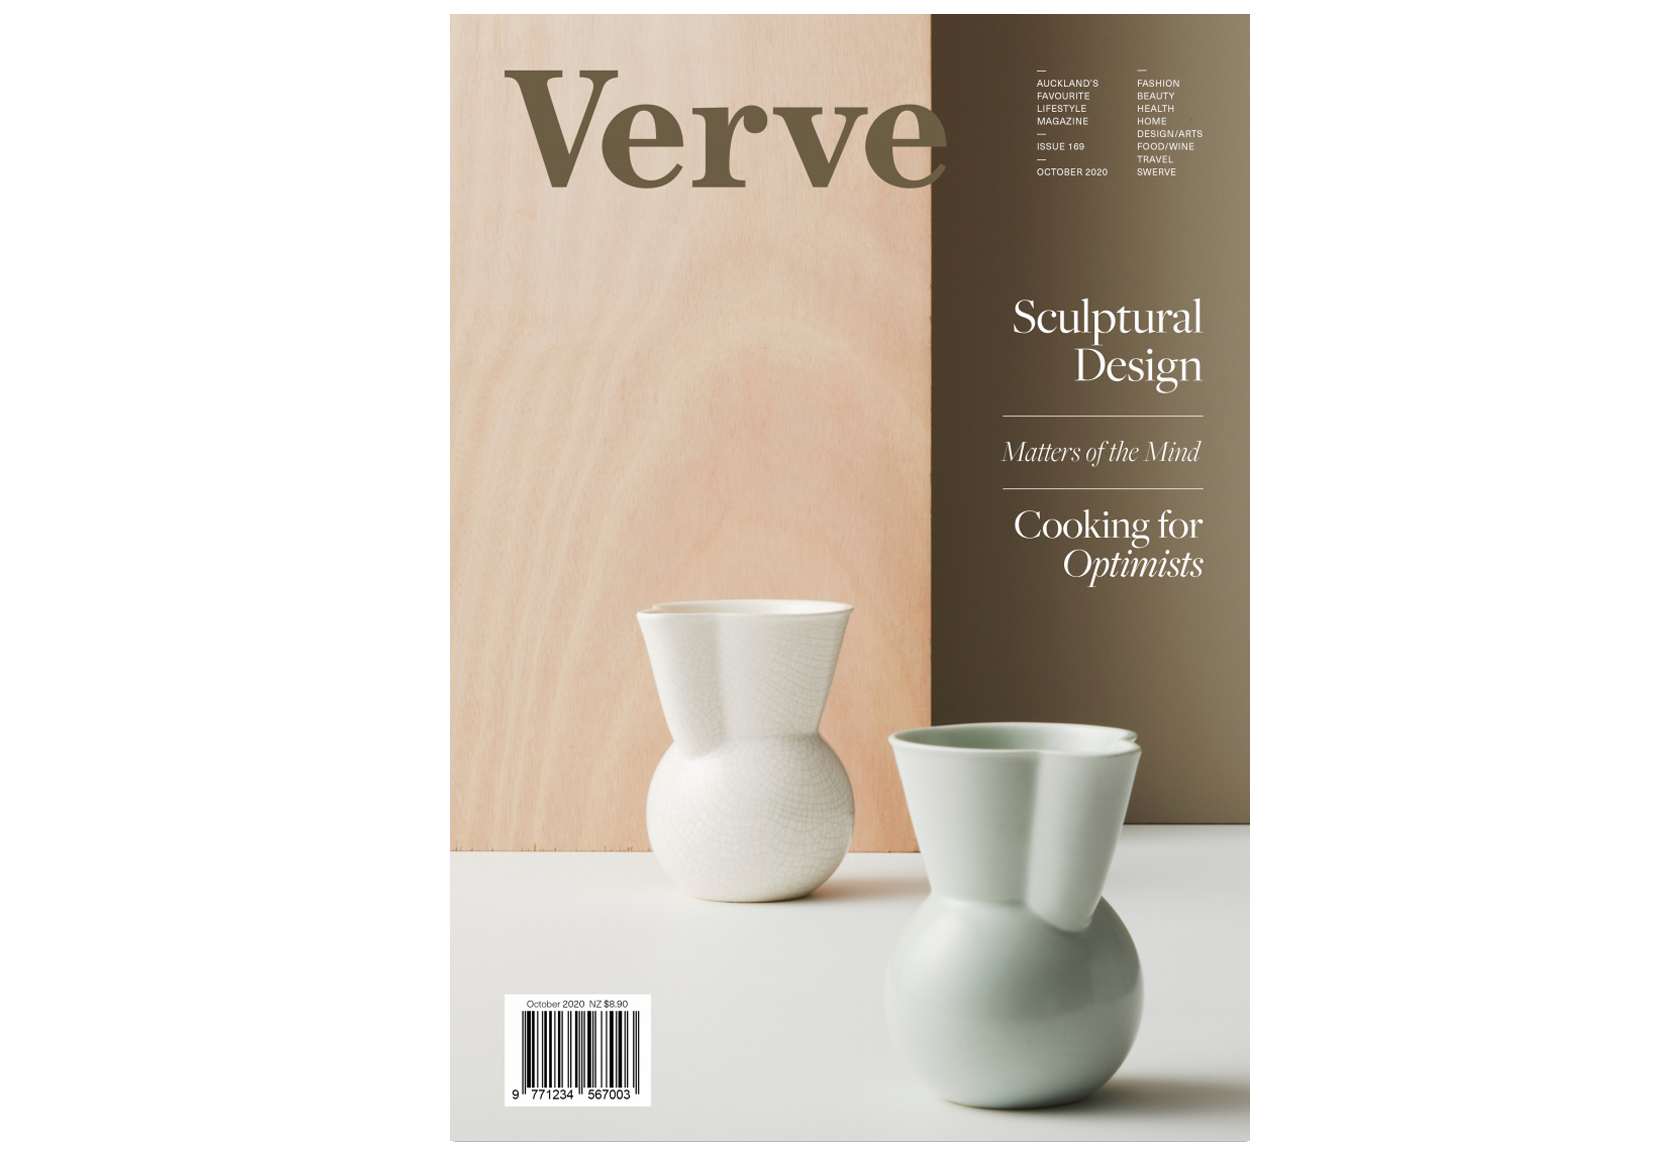 As Featured on Verve Magazine's October 2020 issue - Click here to read